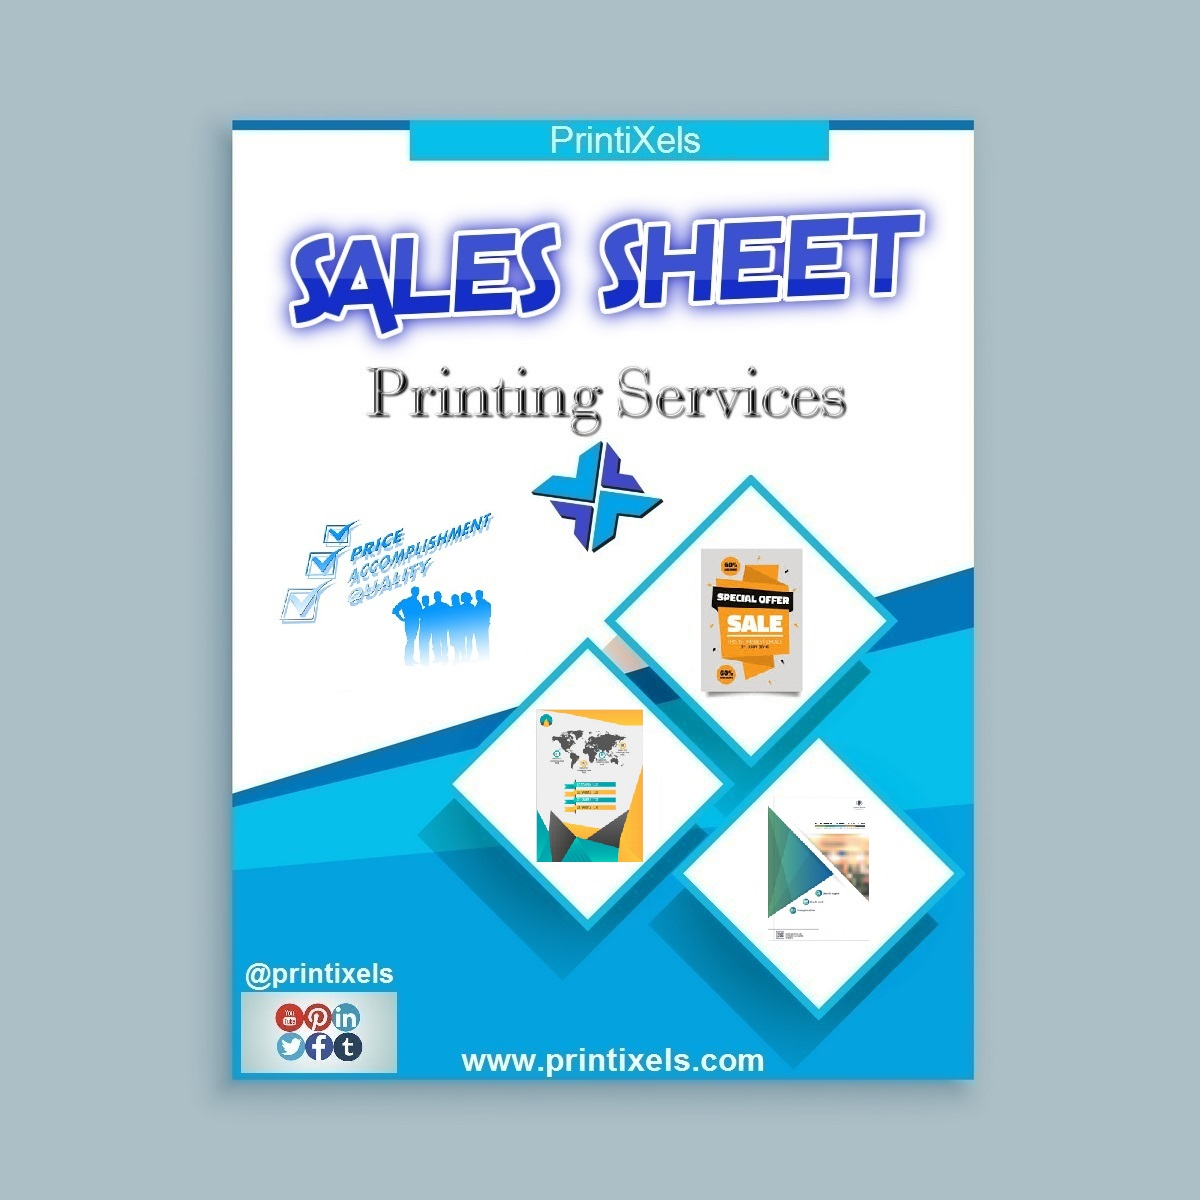 Sales Sheet Printing Services